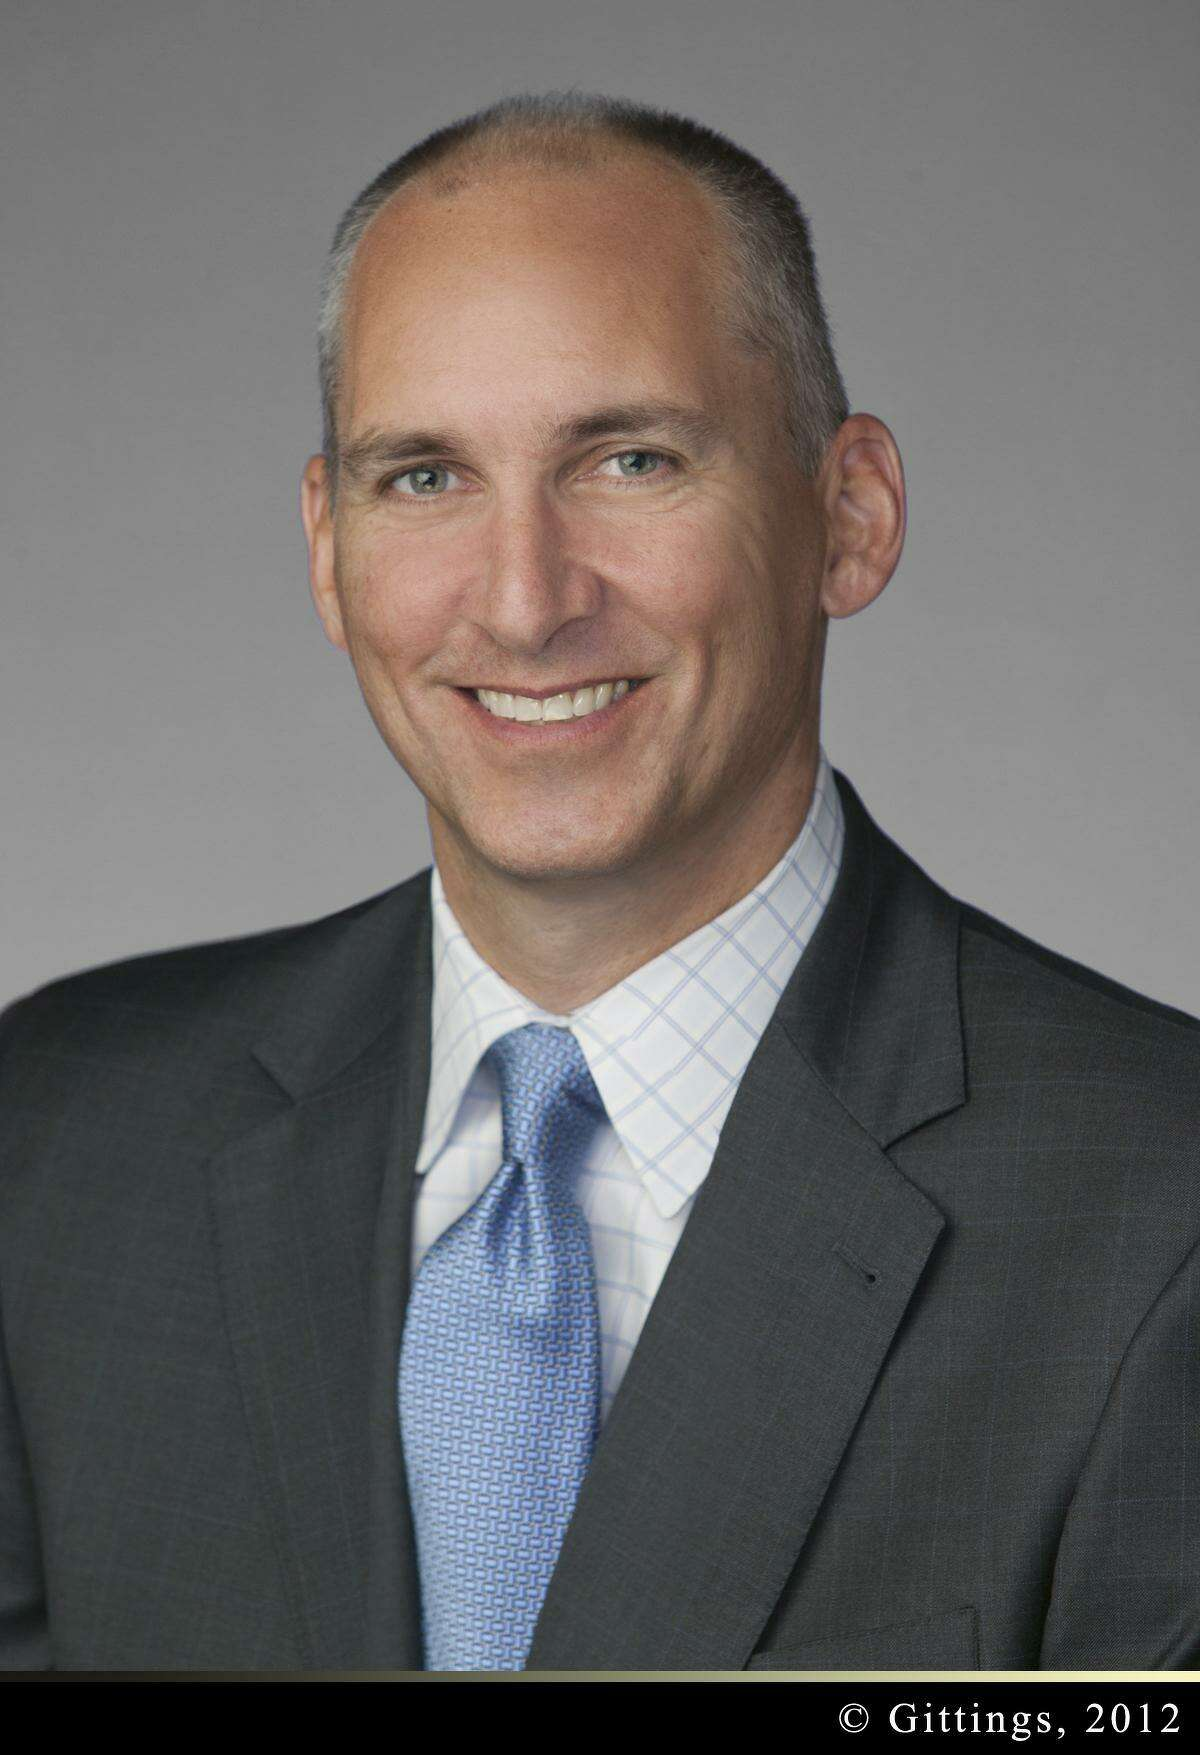 Robert Fields, president and CEO of Houston-based Patrinely Group